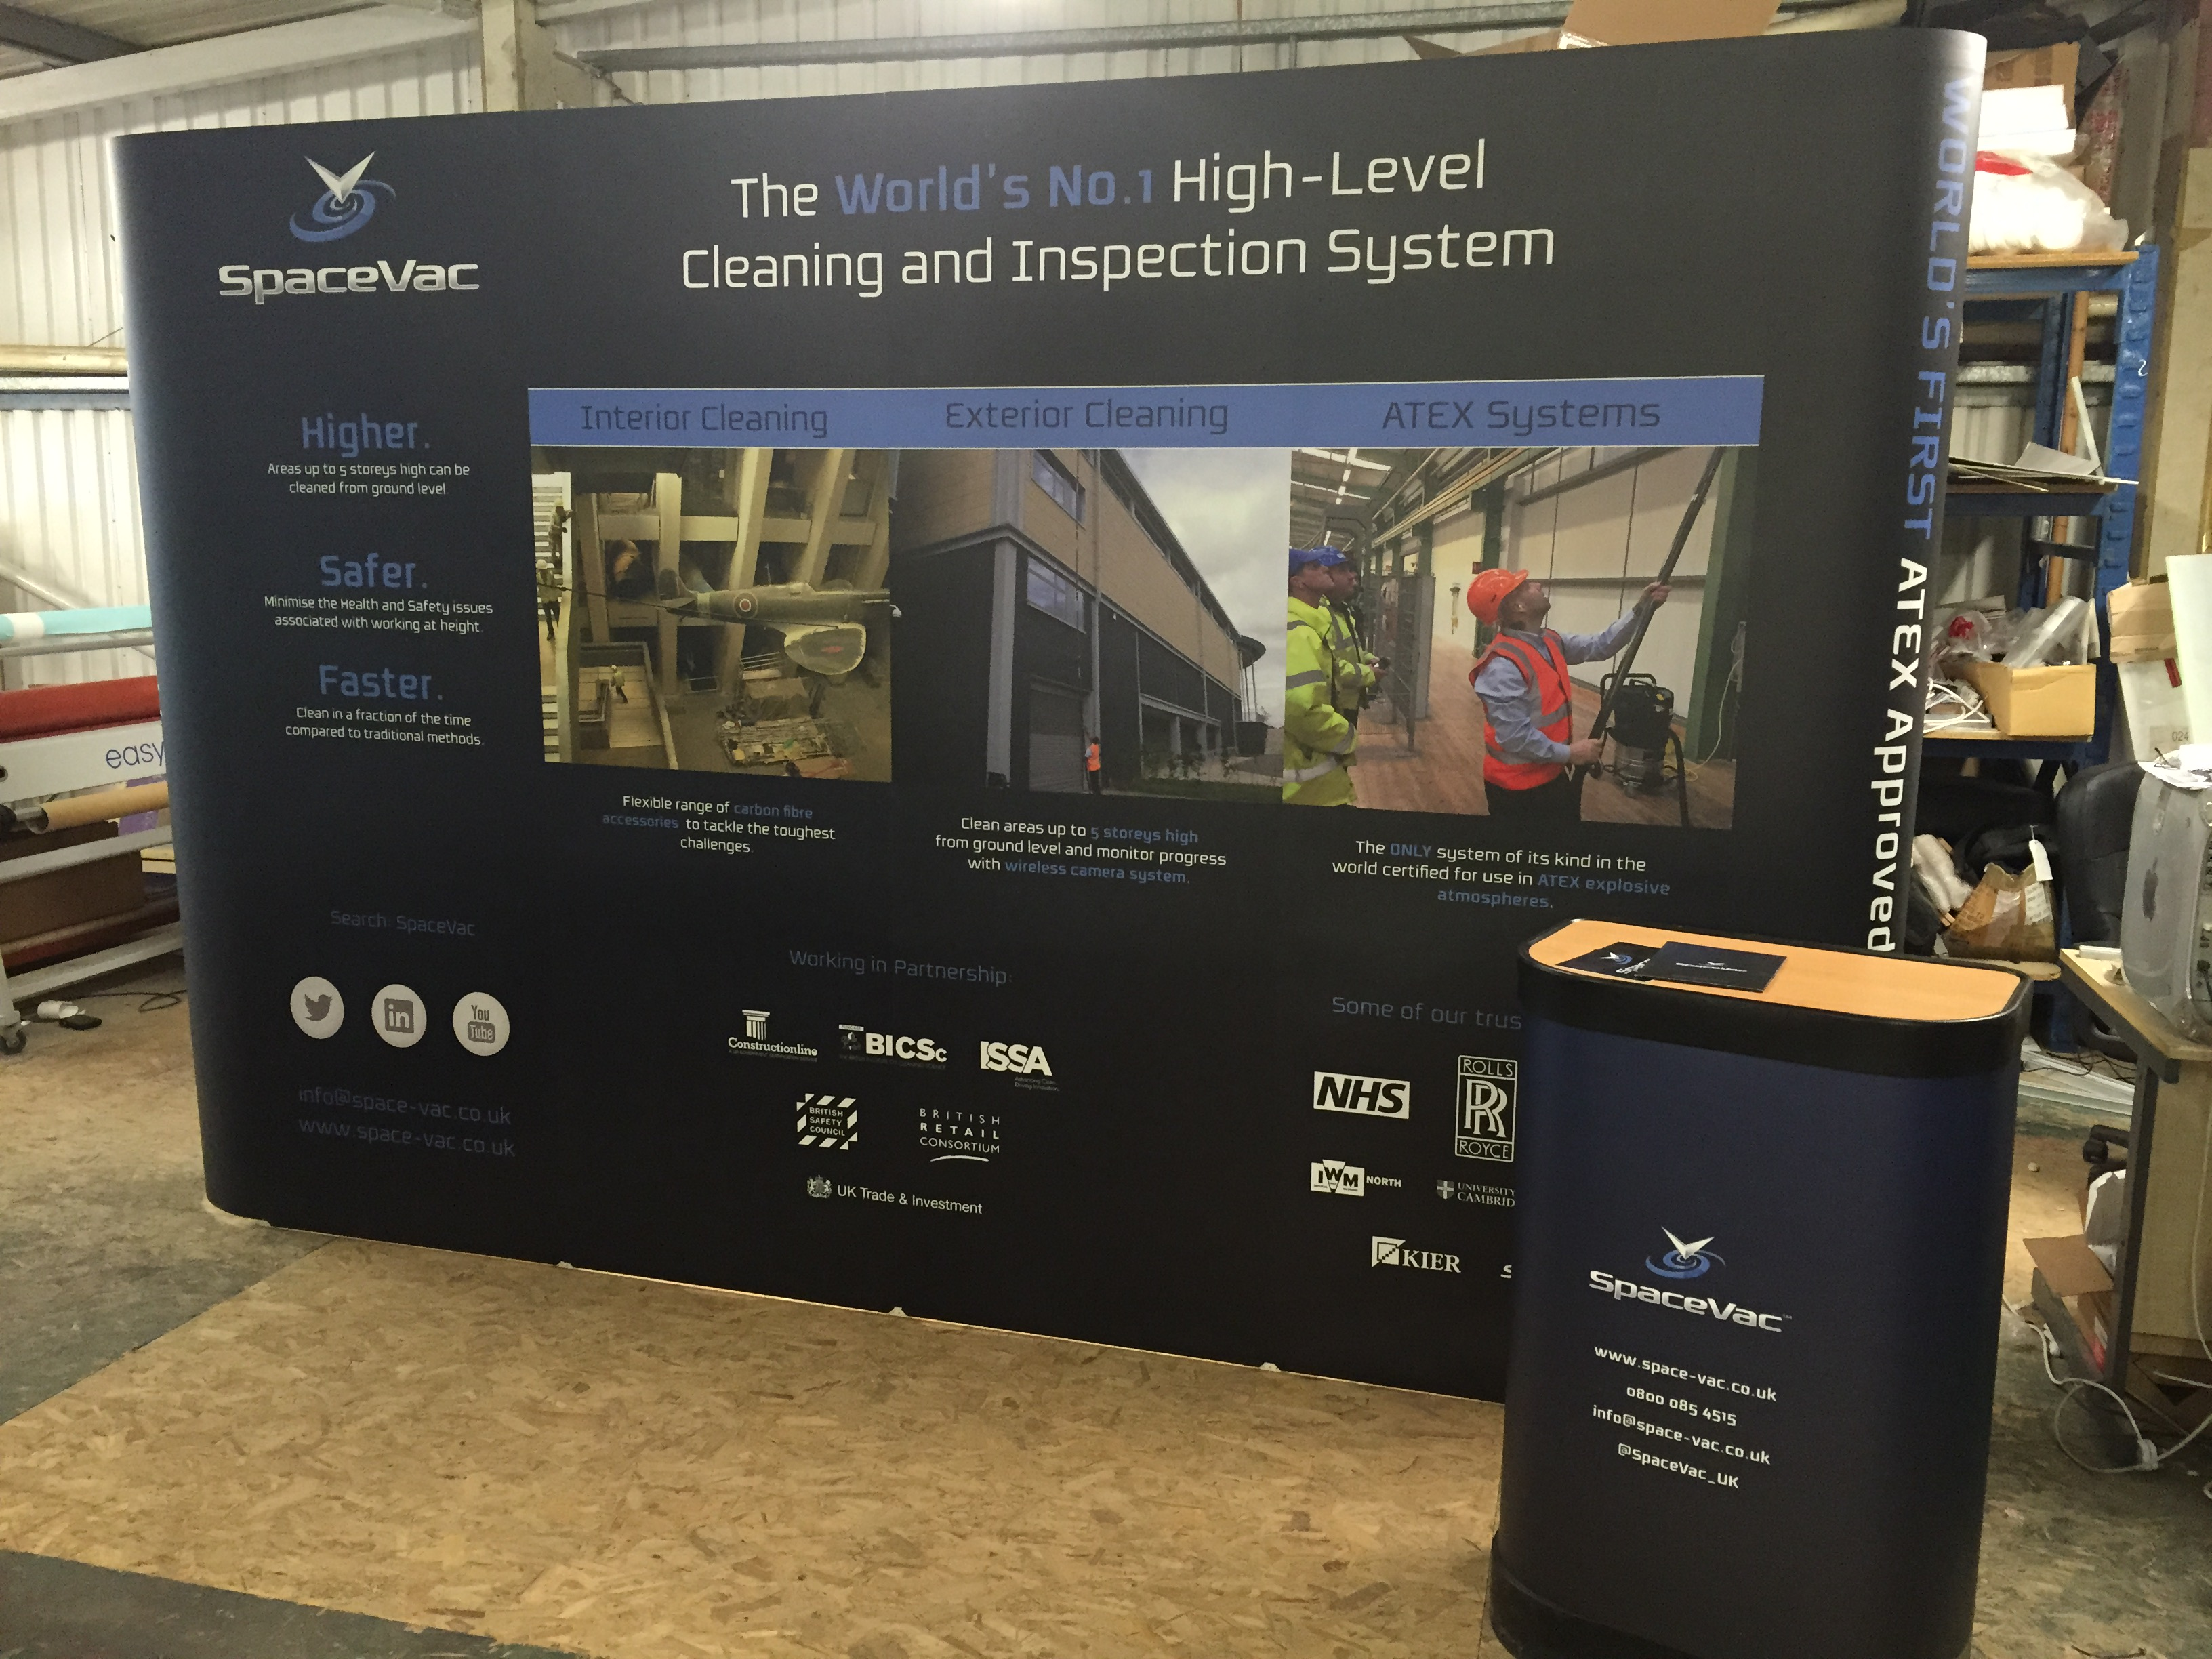 SpaceVac Exhibition Stand for Manchester Cleaning Show